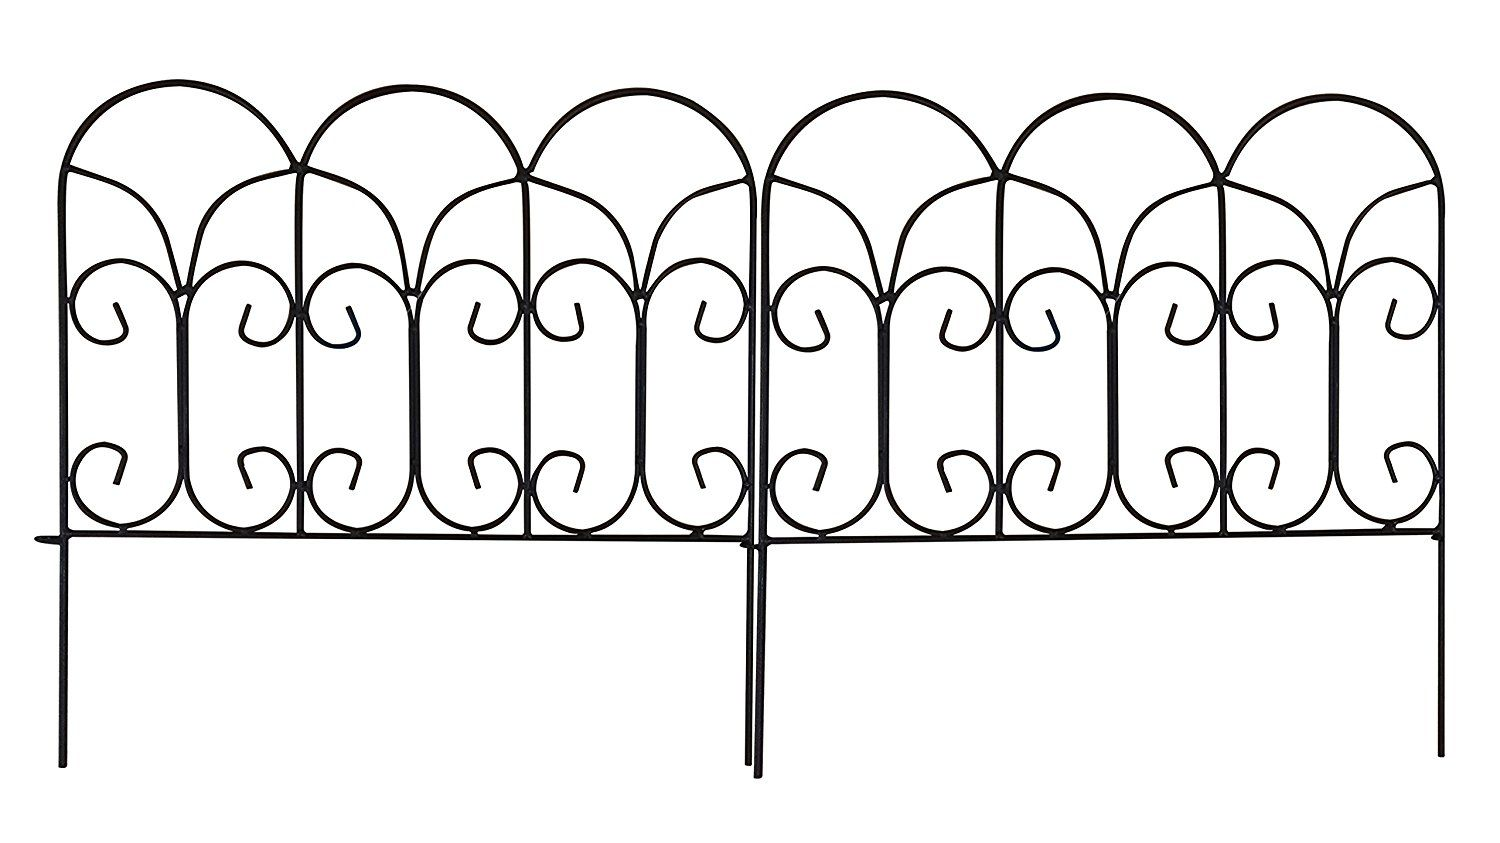 Amagabeli 18 inches by 75 feet rustproof folding metal garden amagabeli 18 inches by 75 feet rustproof folding metal garden border fence 5 panels garden baanklon Choice Image